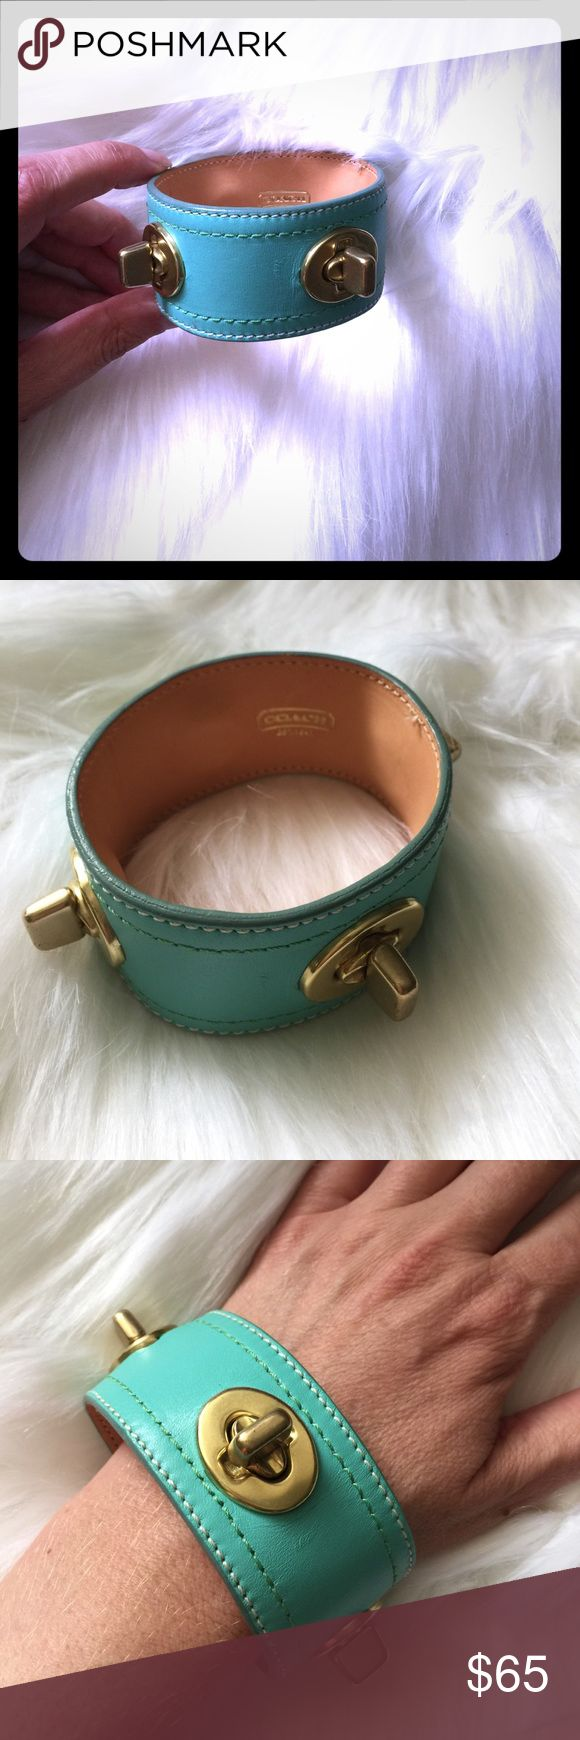 Coach turnlock leather bracelet BNWOT, gorgeous mint green leather Coach bracelet with gold turnlocks. Comes with dustbag. Coach Jewelry Bracelets